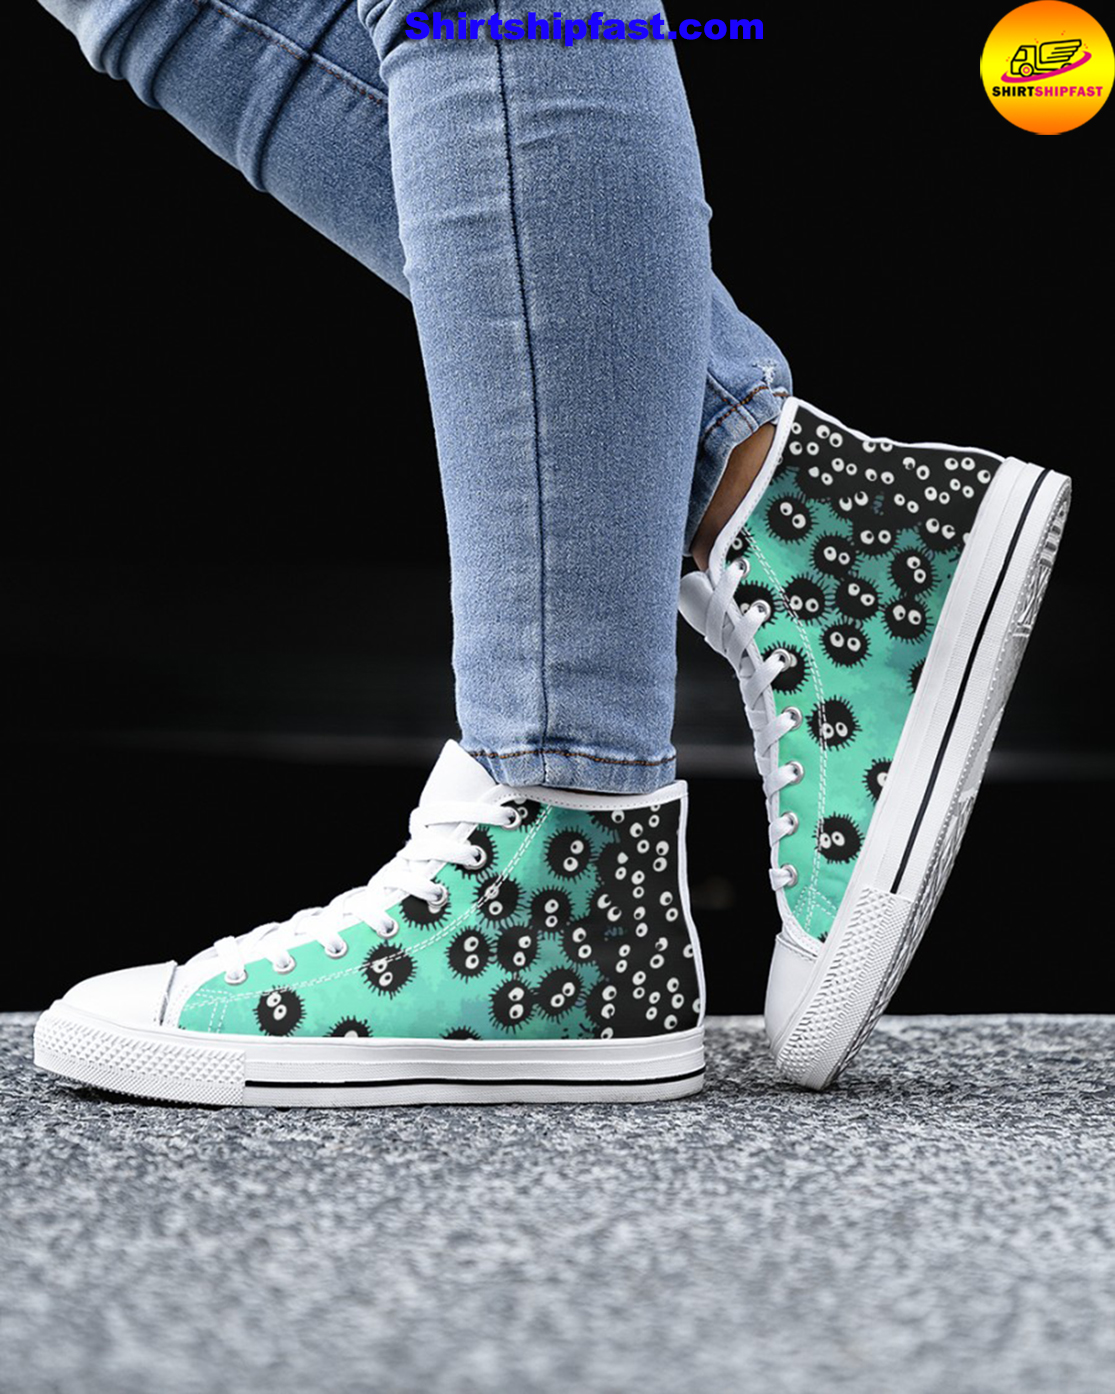 Susuwatari soot sprites high top shoes - Picture 3